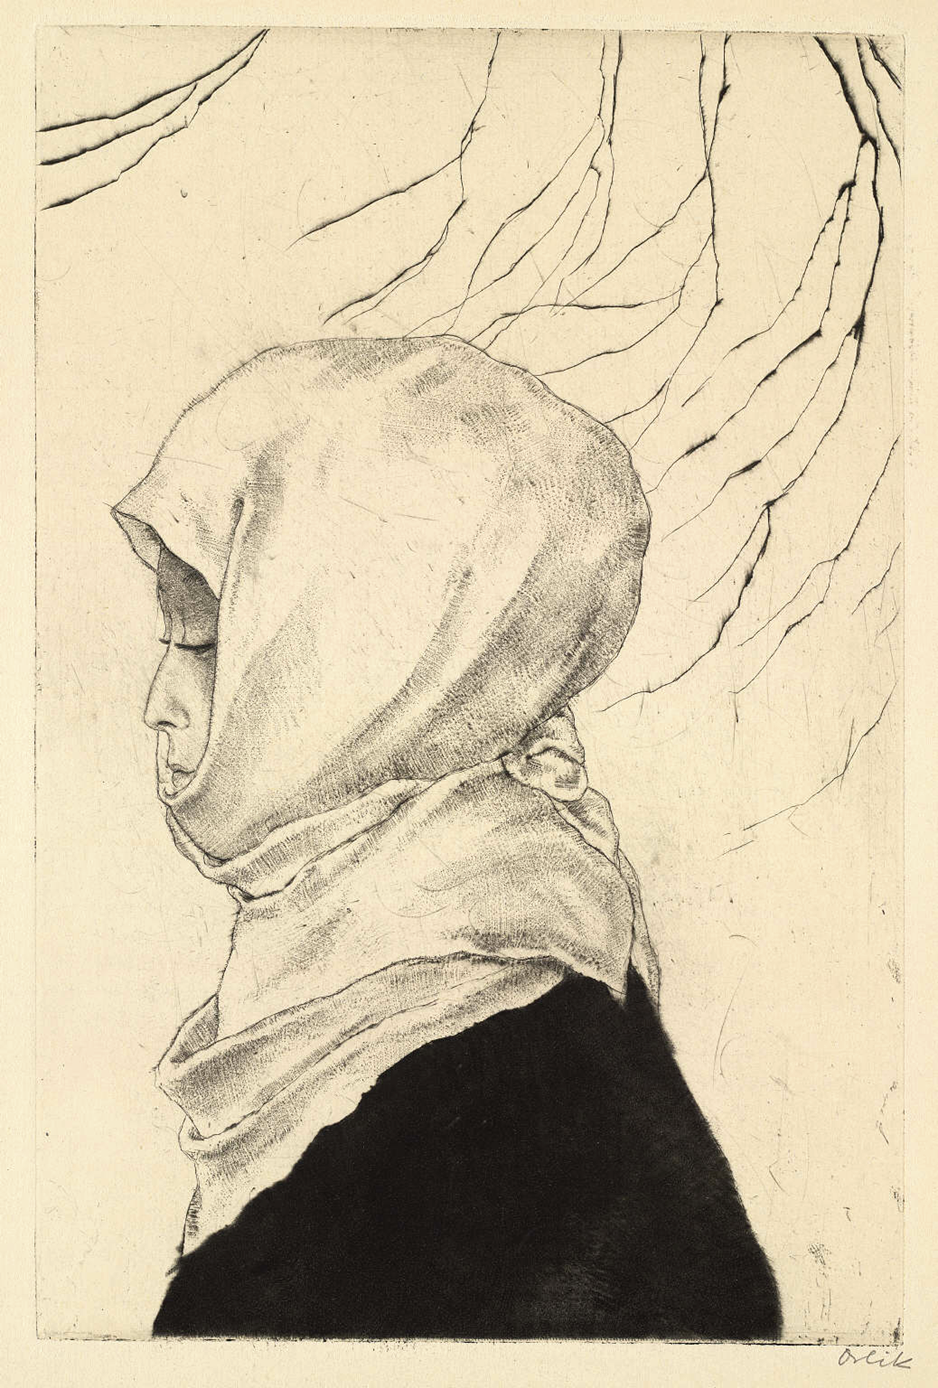 Japanese Woman in Winter Clothes, c.1870 - 1932. Emil Orlik. Etching